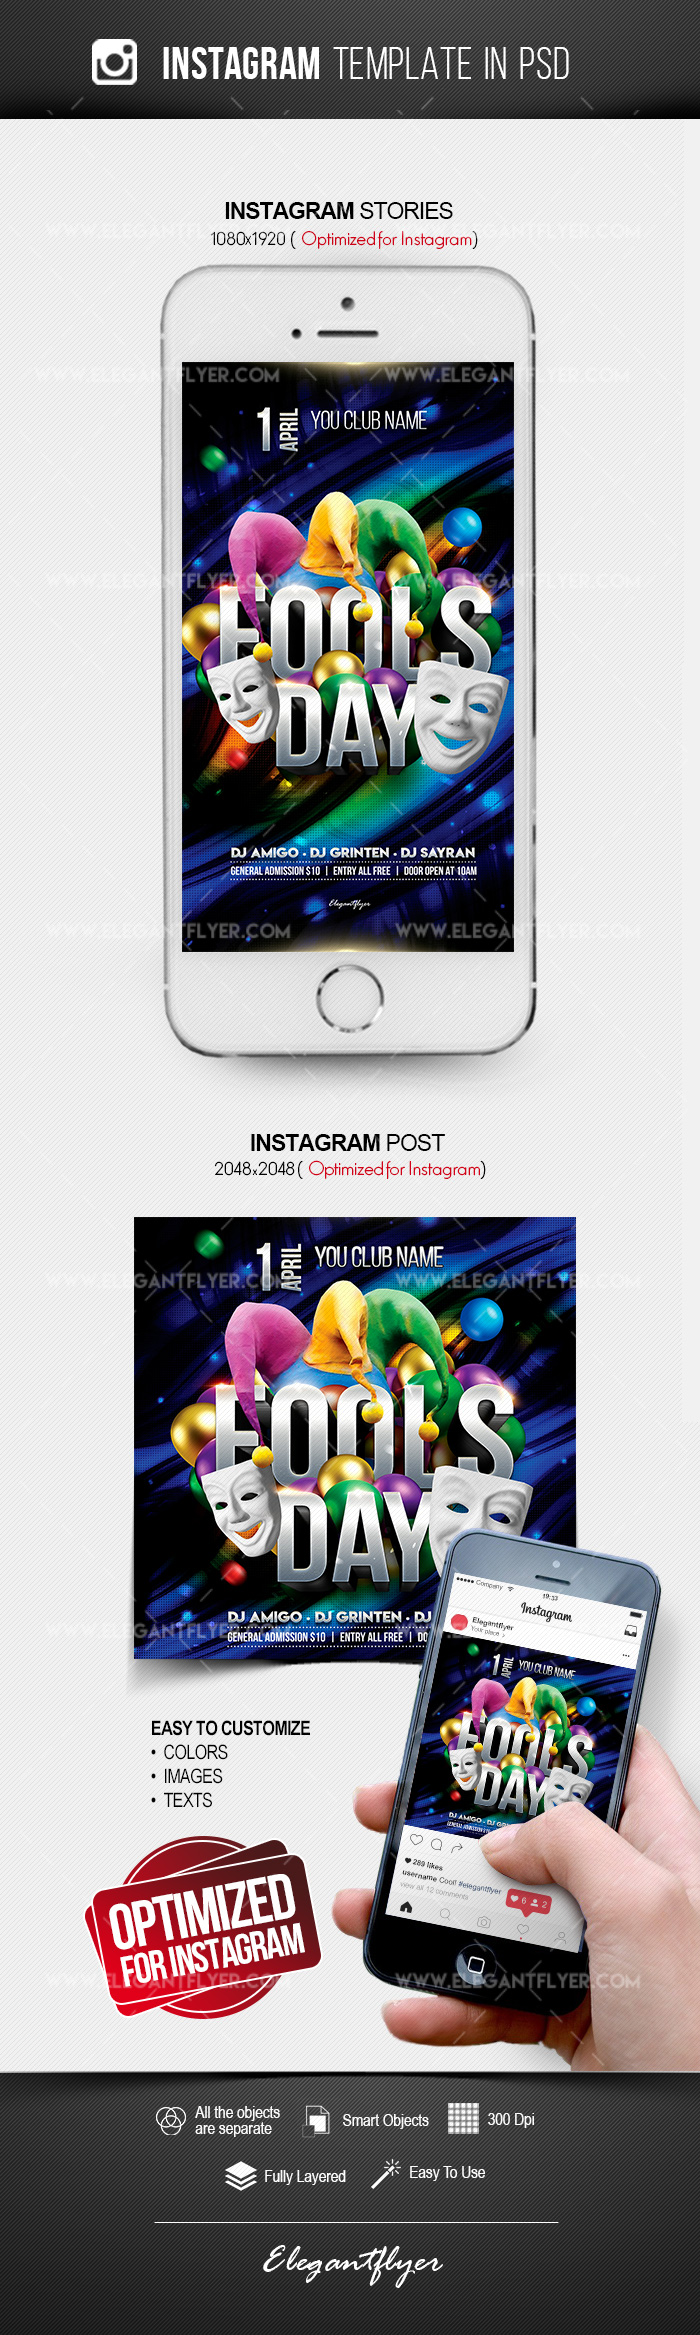 Fool's Day – Instagram Stories Template in PSD + Post Templates